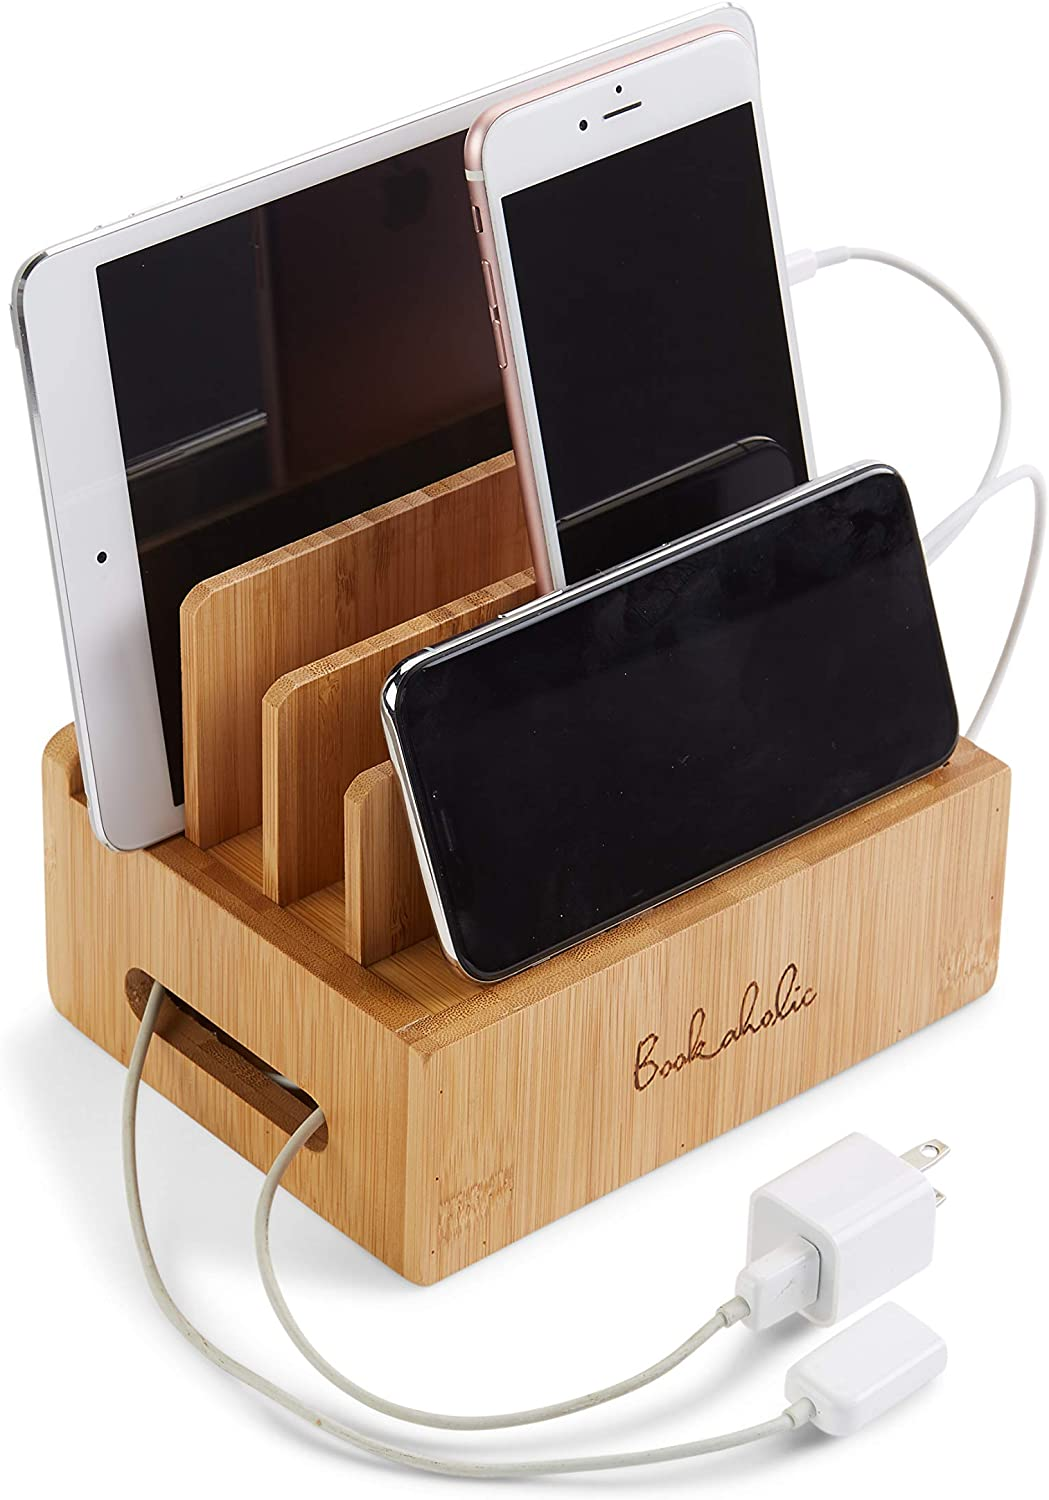 Charging Station & Multi Device Organizer Bamboo Large Capacity Desktop Cord Organizer Dock Compatible with Smartphones iPhone iPad and Tablets-Durable and Eco-Friendly by: Bookaholic